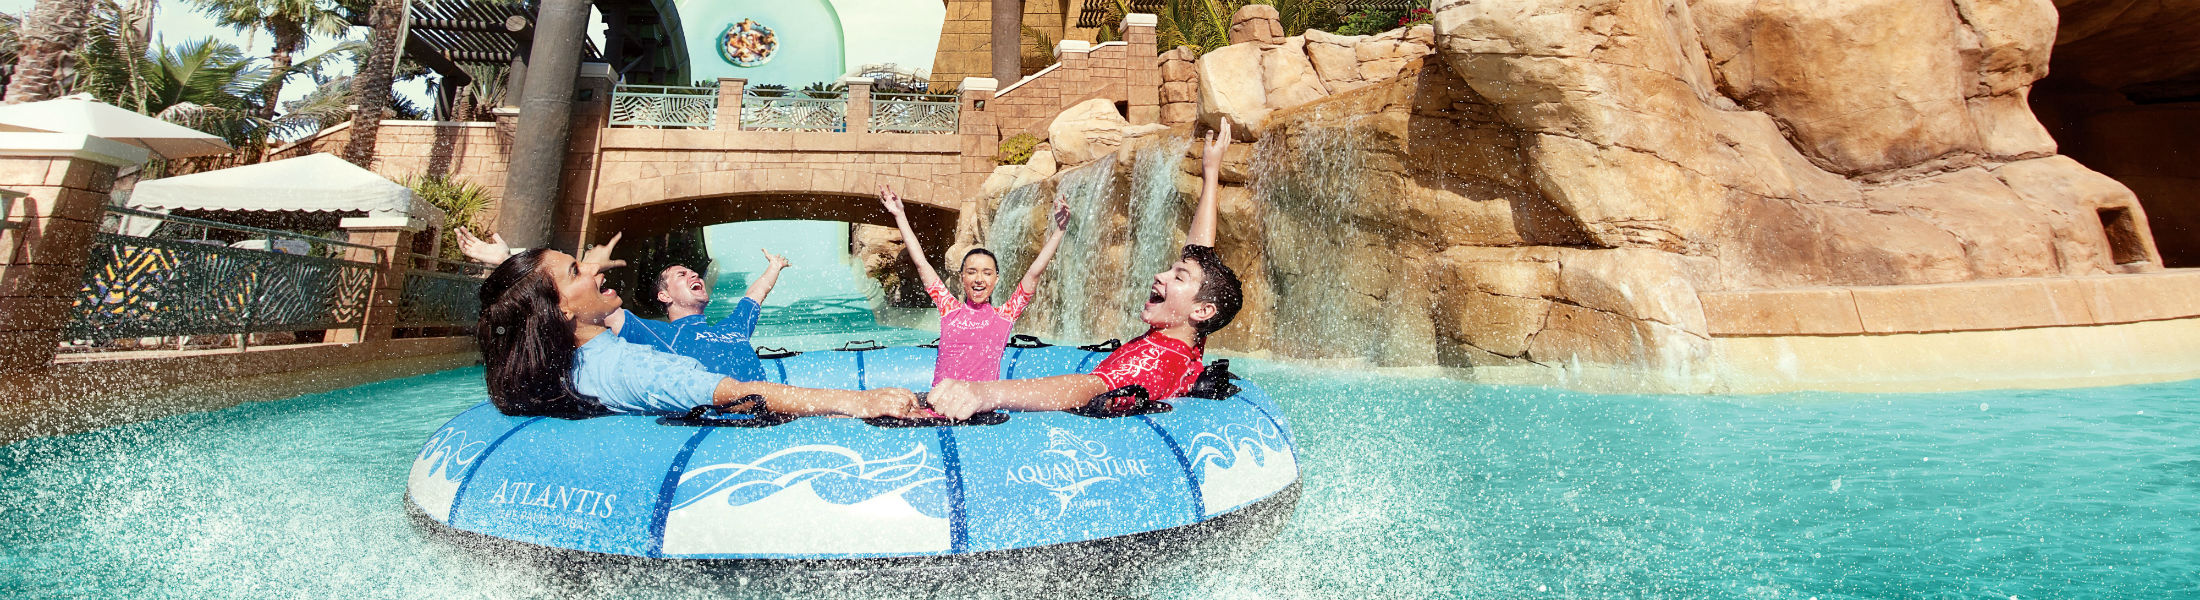 splashdown Zoomerango at the Atlantis The Palm